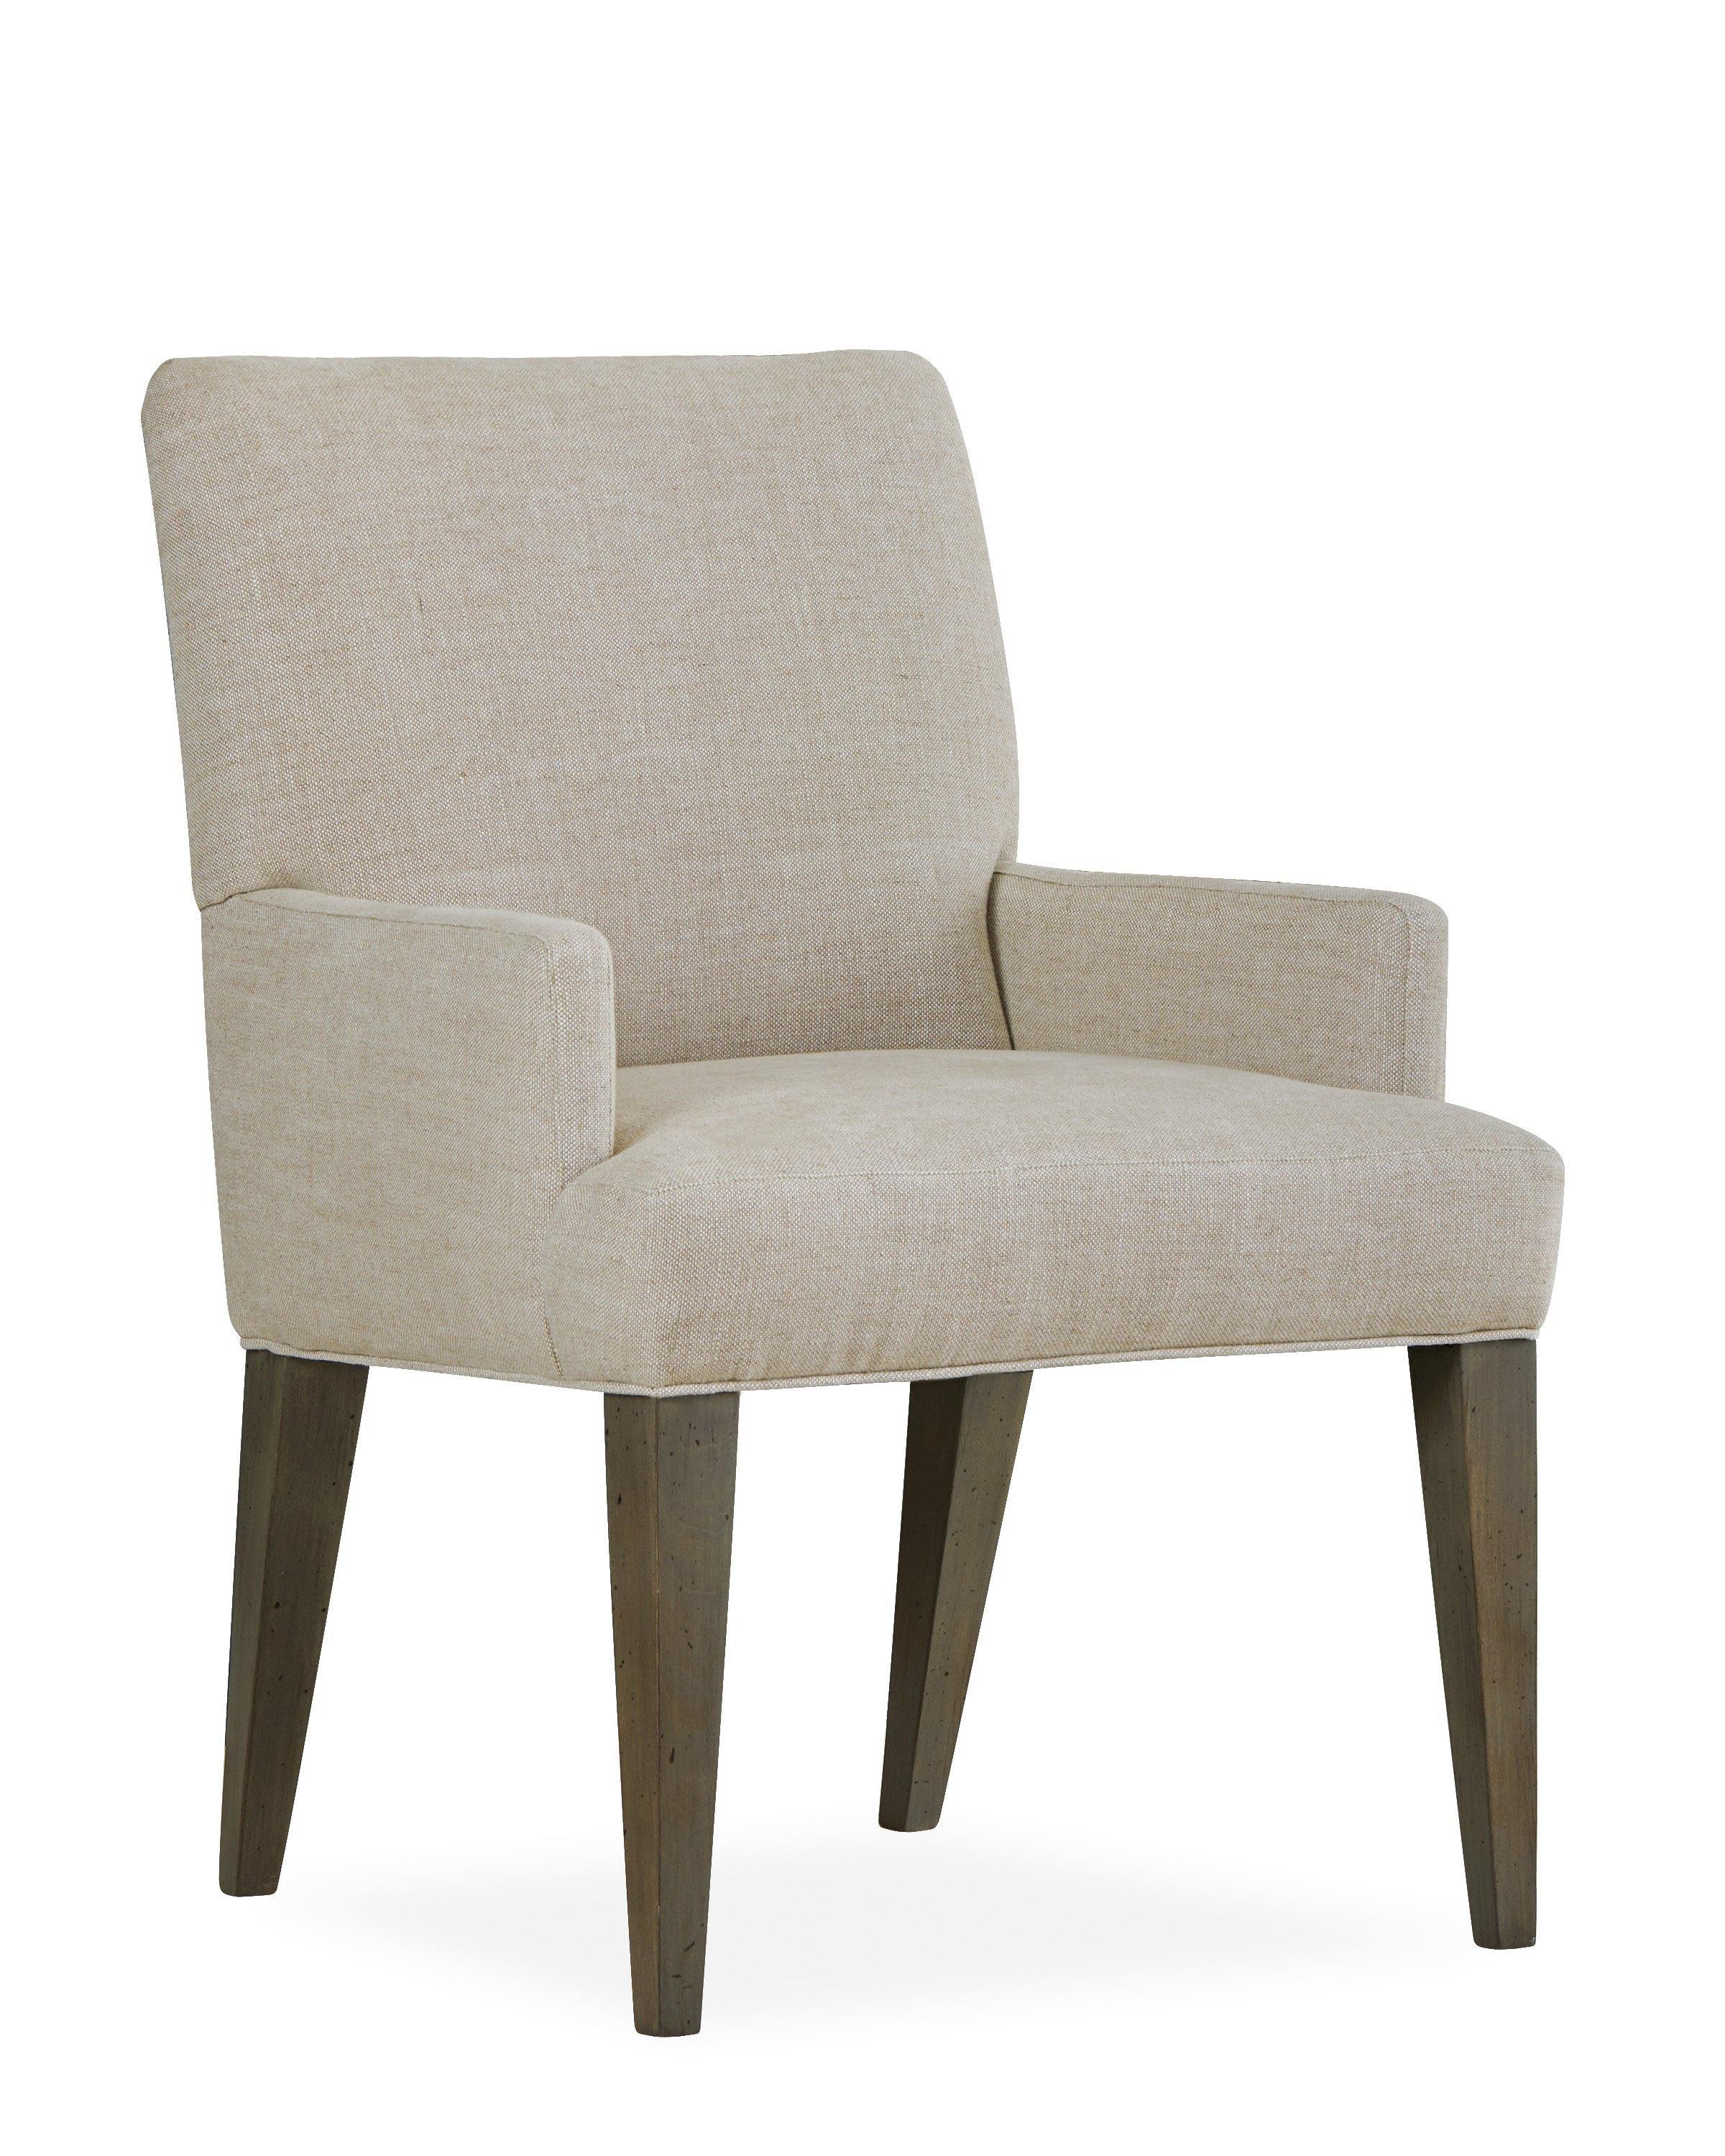 4487-41 LEE Industries Dining Chair